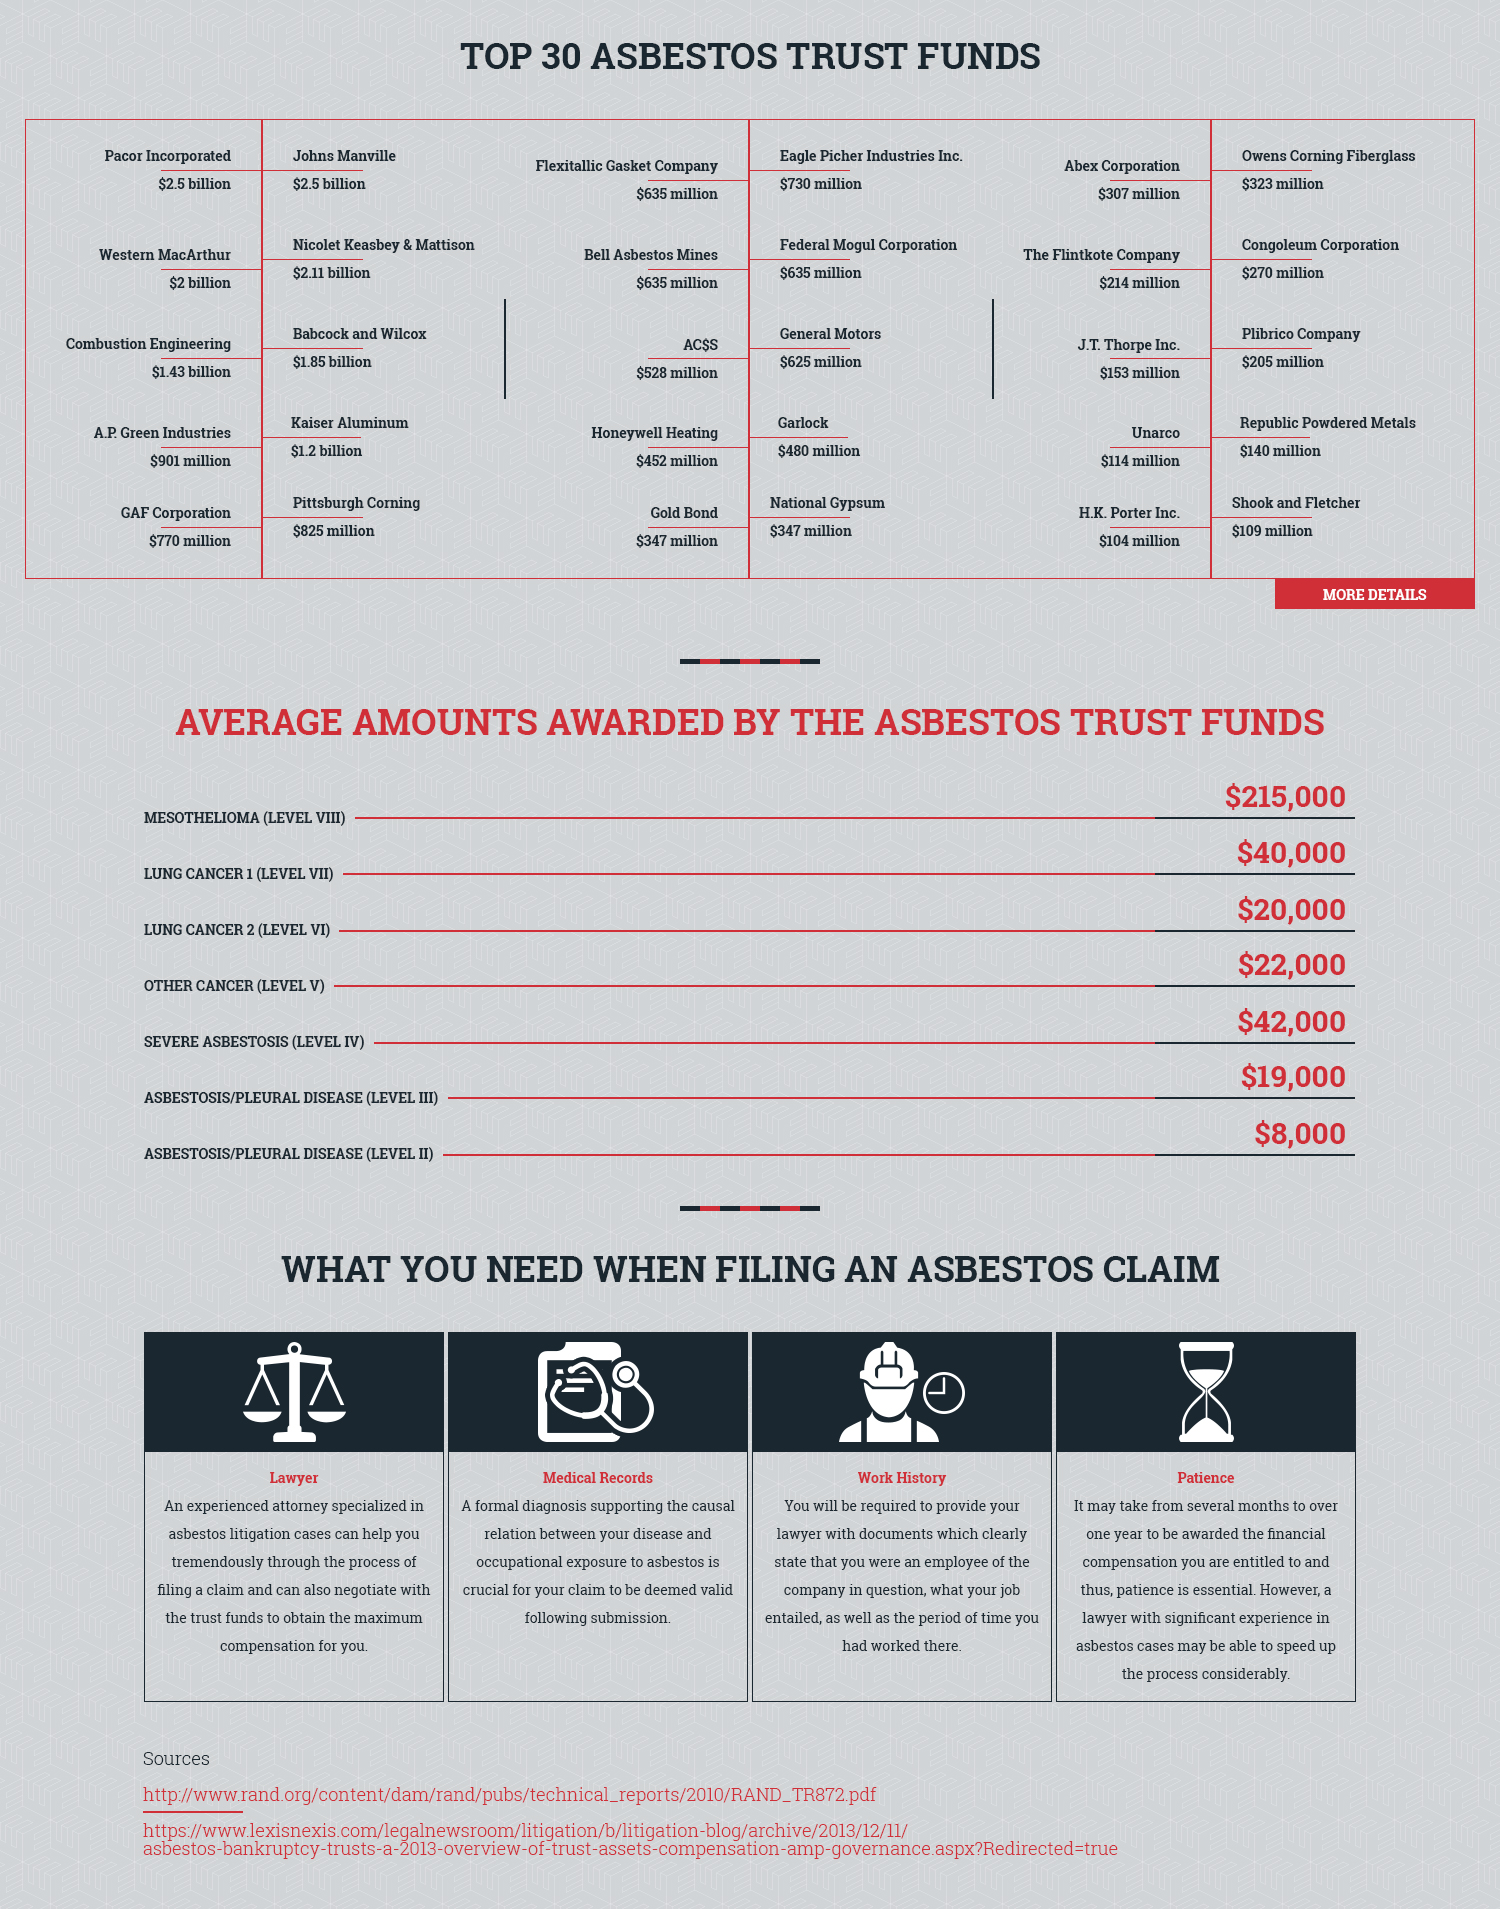 Top 30 Asbestos Trust Funds